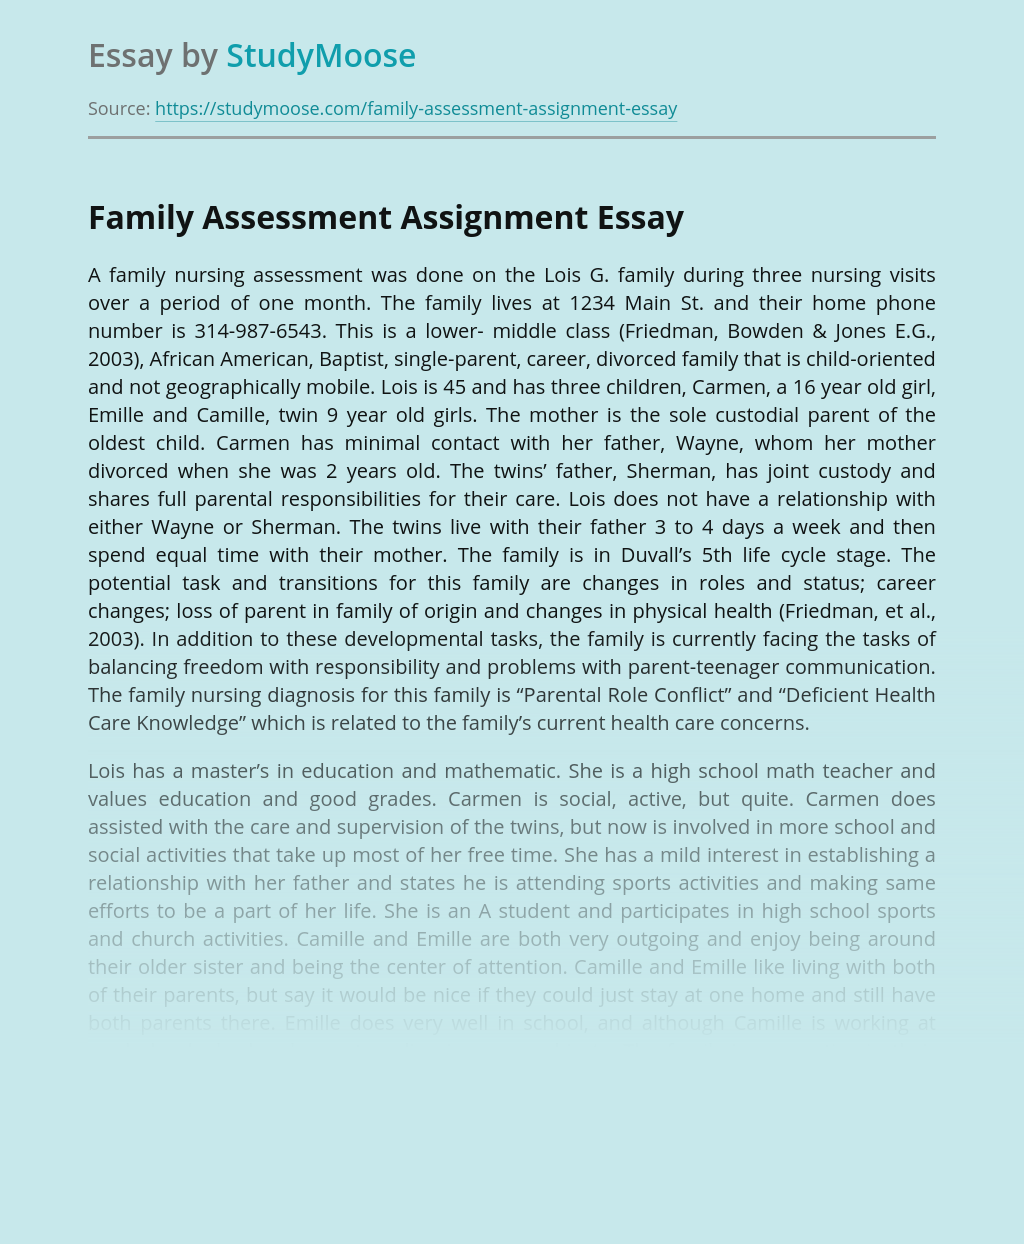 Family Assessment Assignment